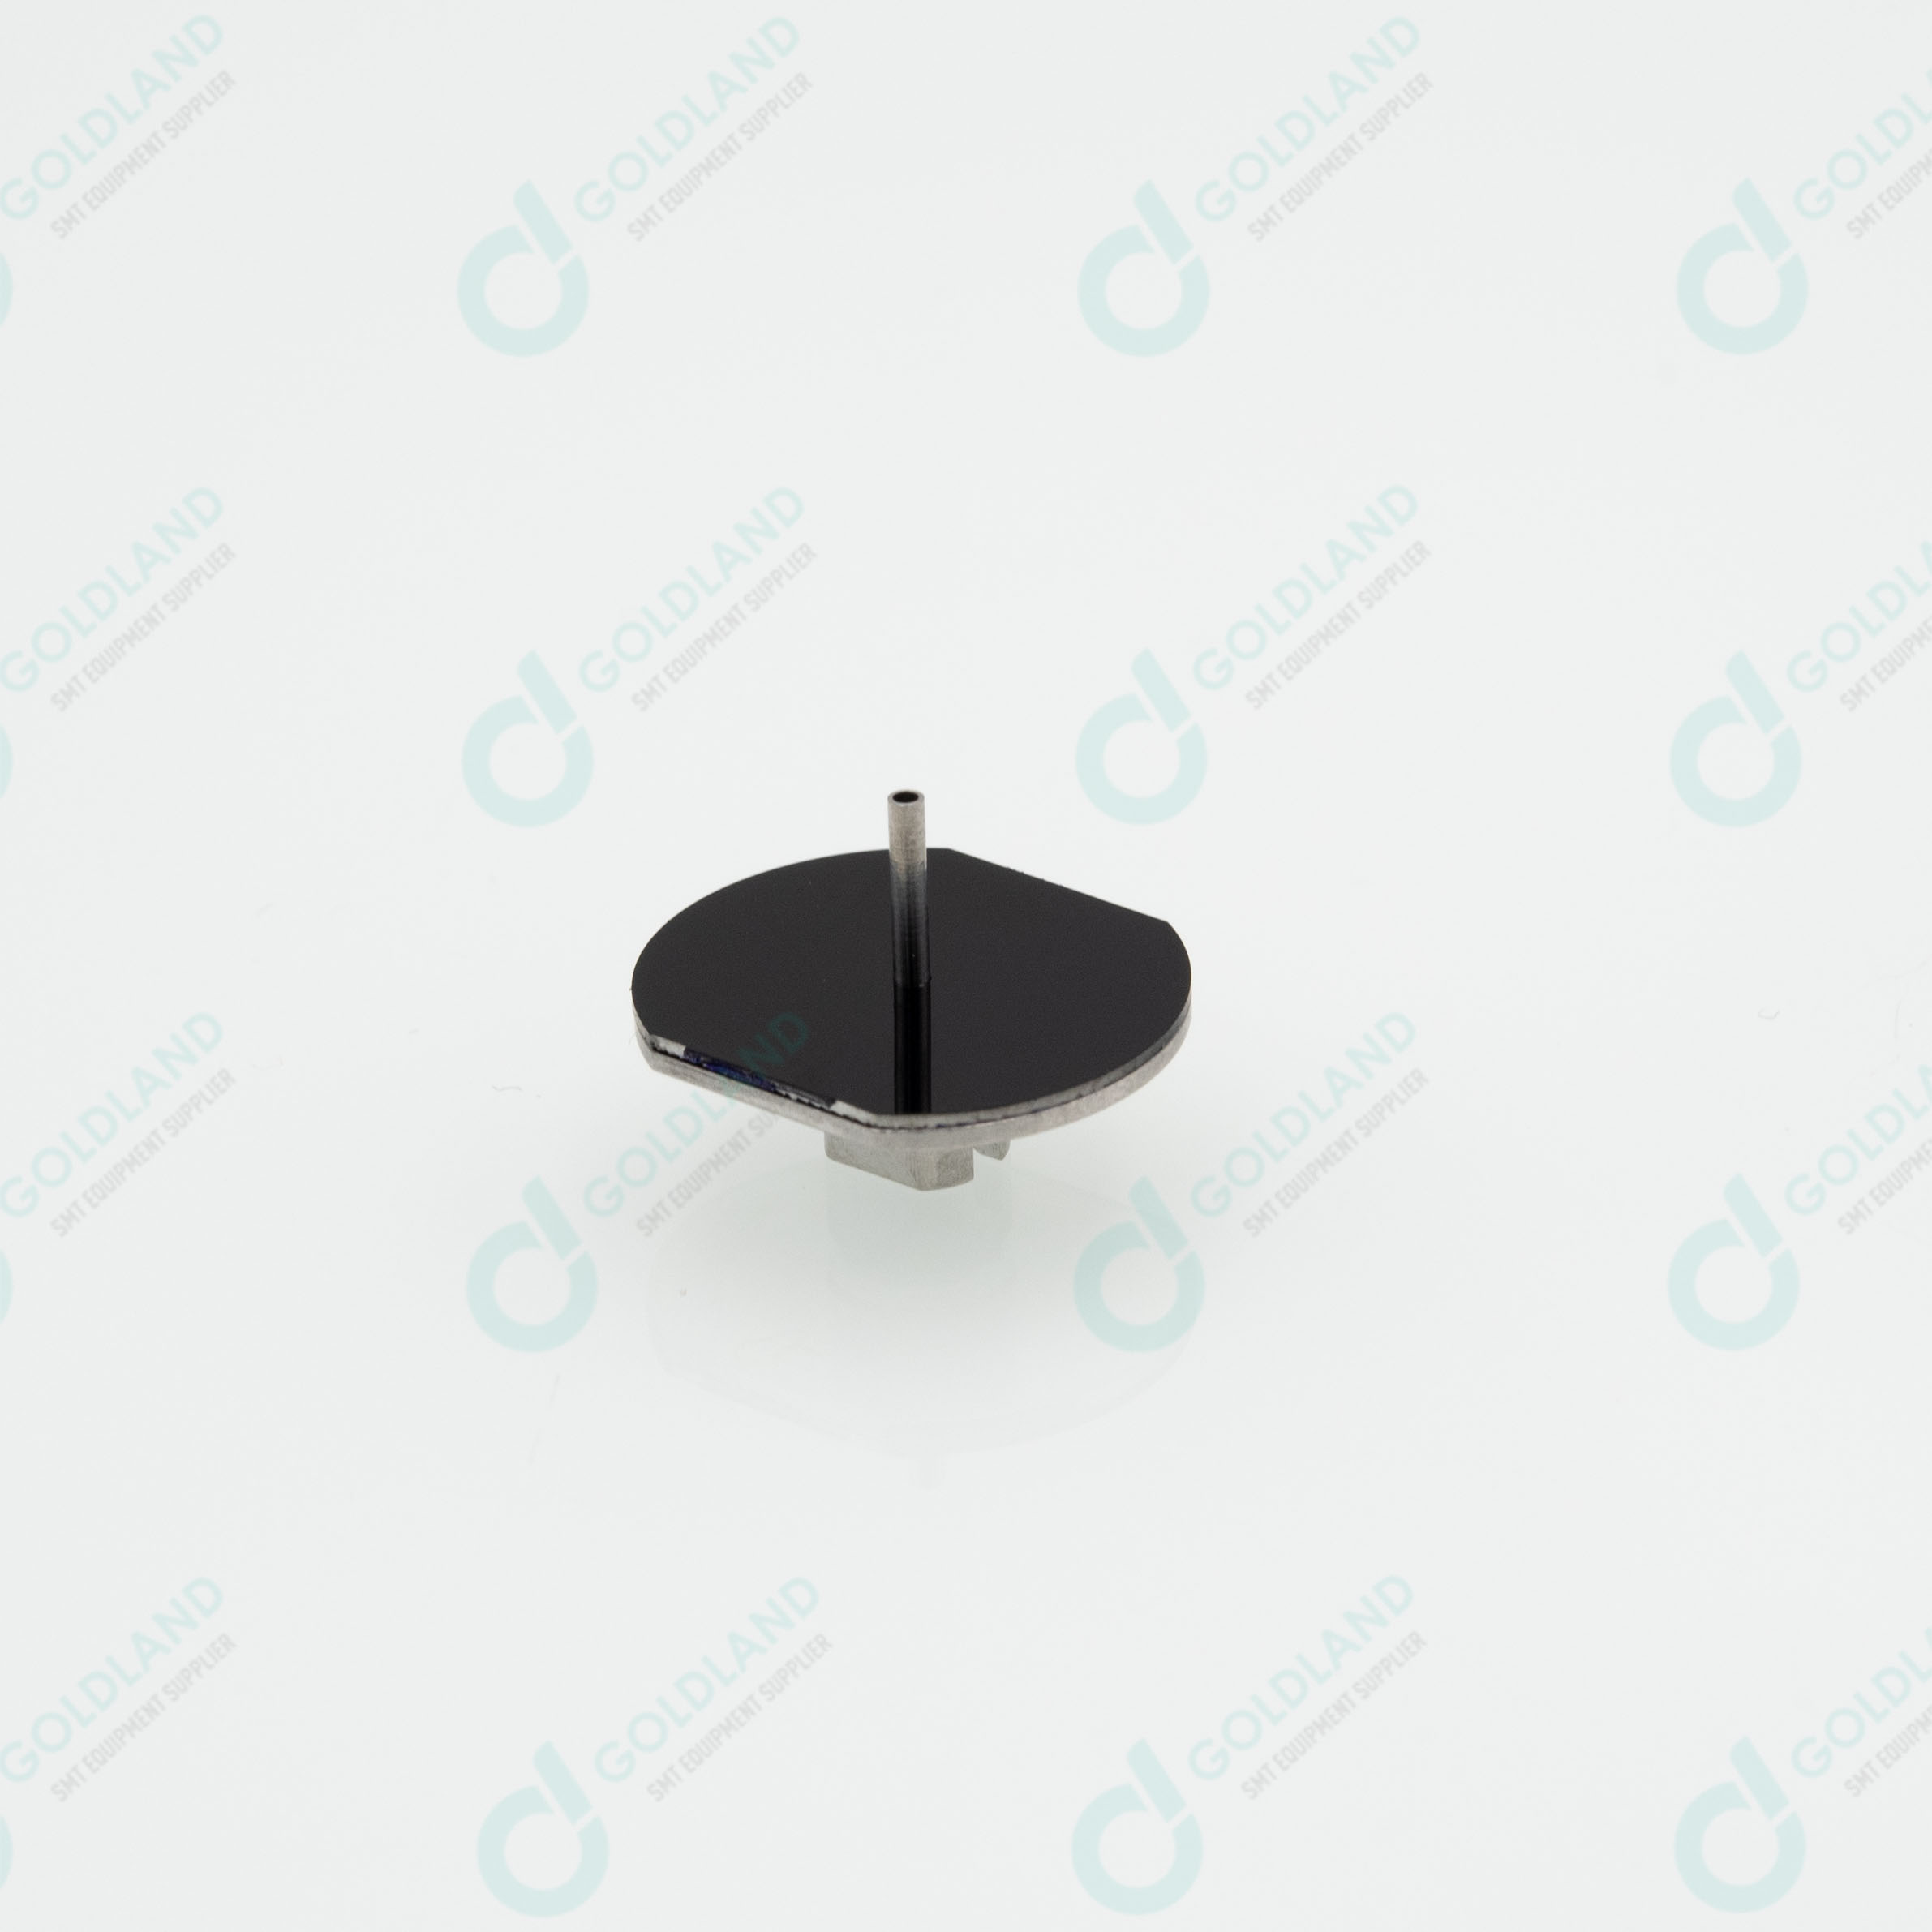 KXFX0384A00 Panasonic 120 Nozzle for Panasonic smt machine parts